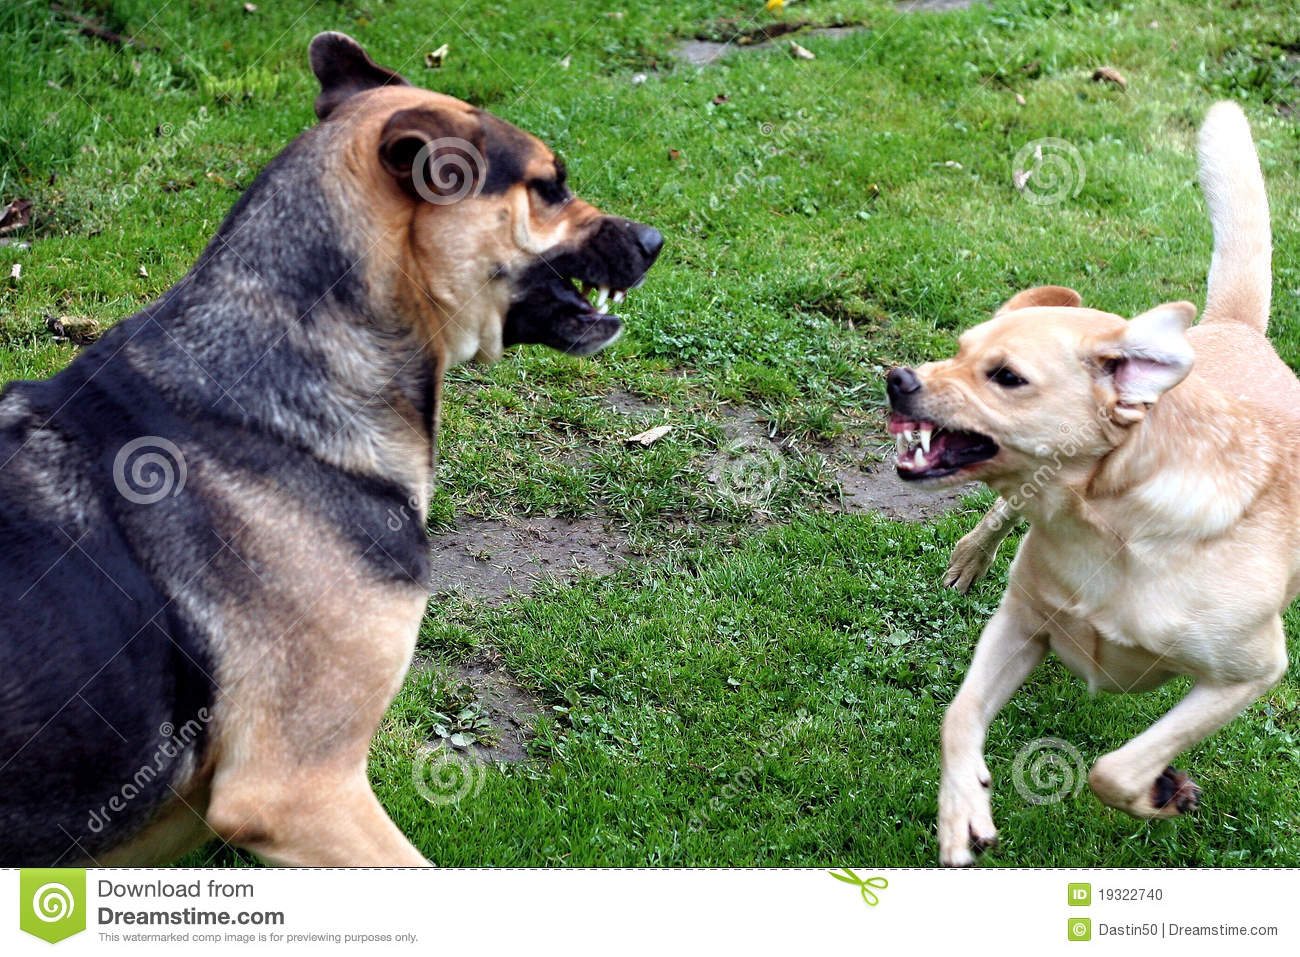 Home Dogs - Imitation Fighting